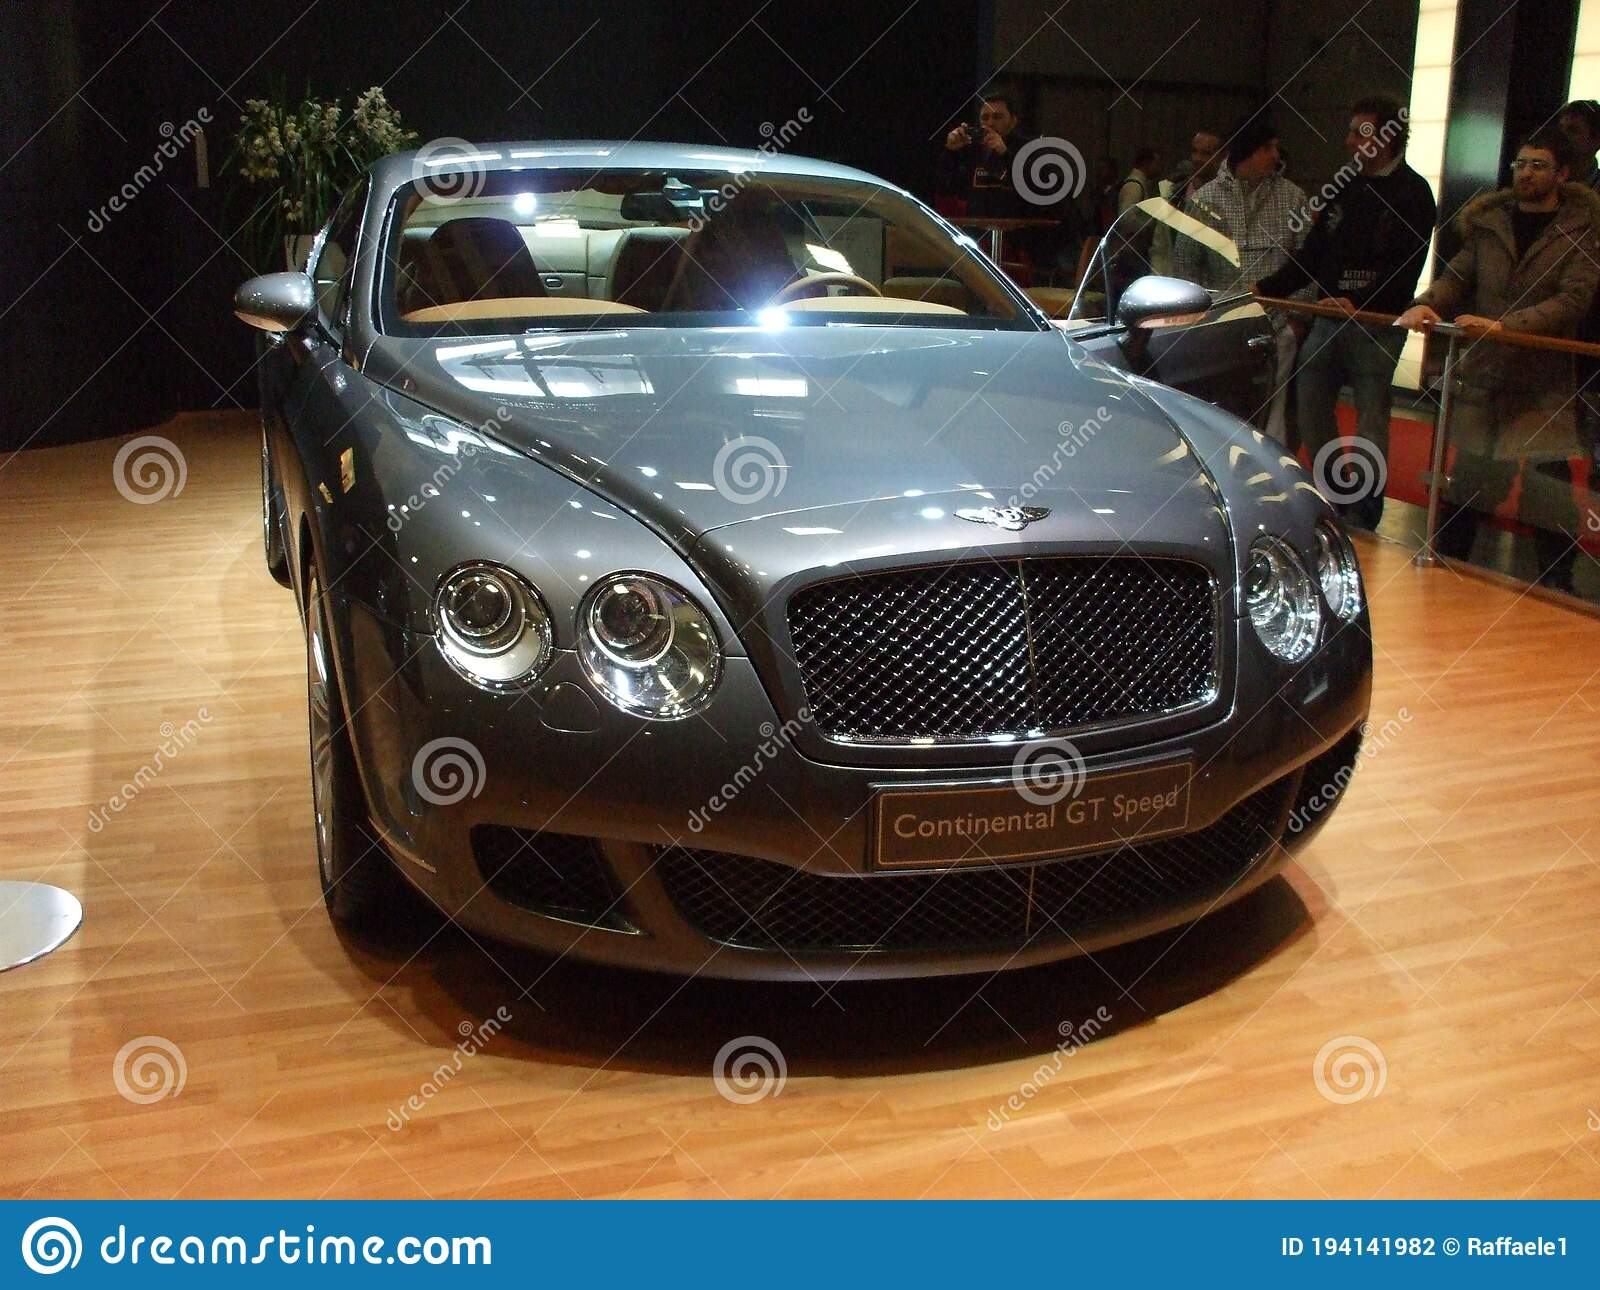 849 Bentley Front Photos Free Royalty Free Stock Photos From Dreamstime